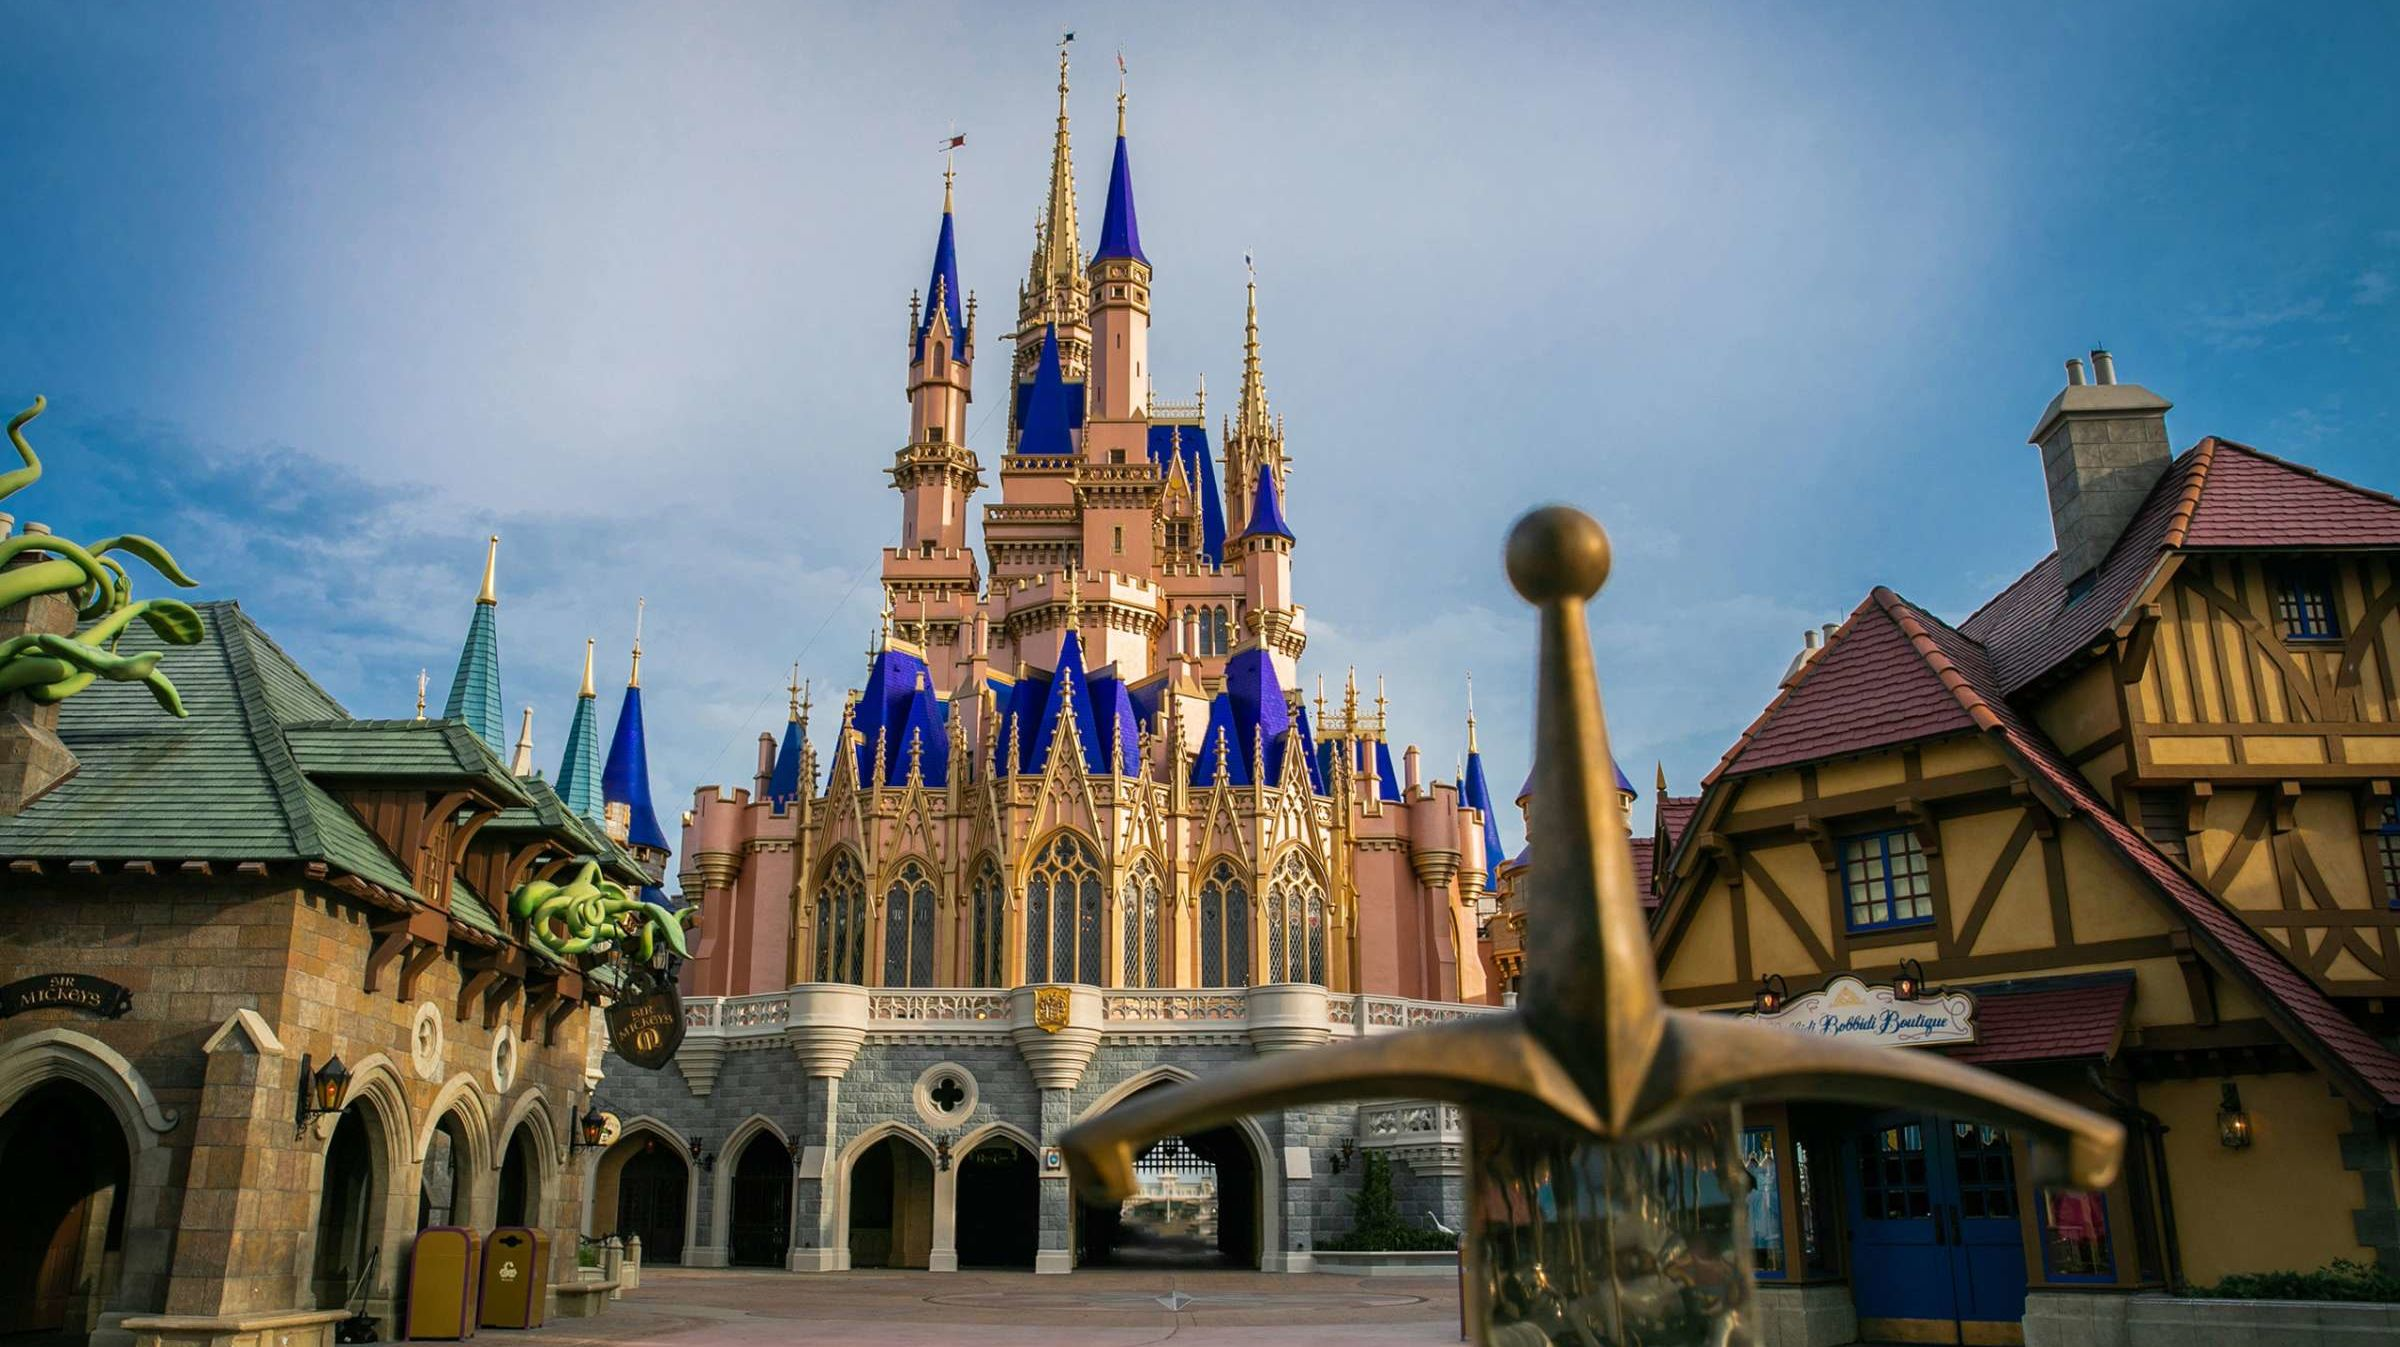 The Surprising Reason Why There Are No Mirrors in Most Disney World Bathrooms